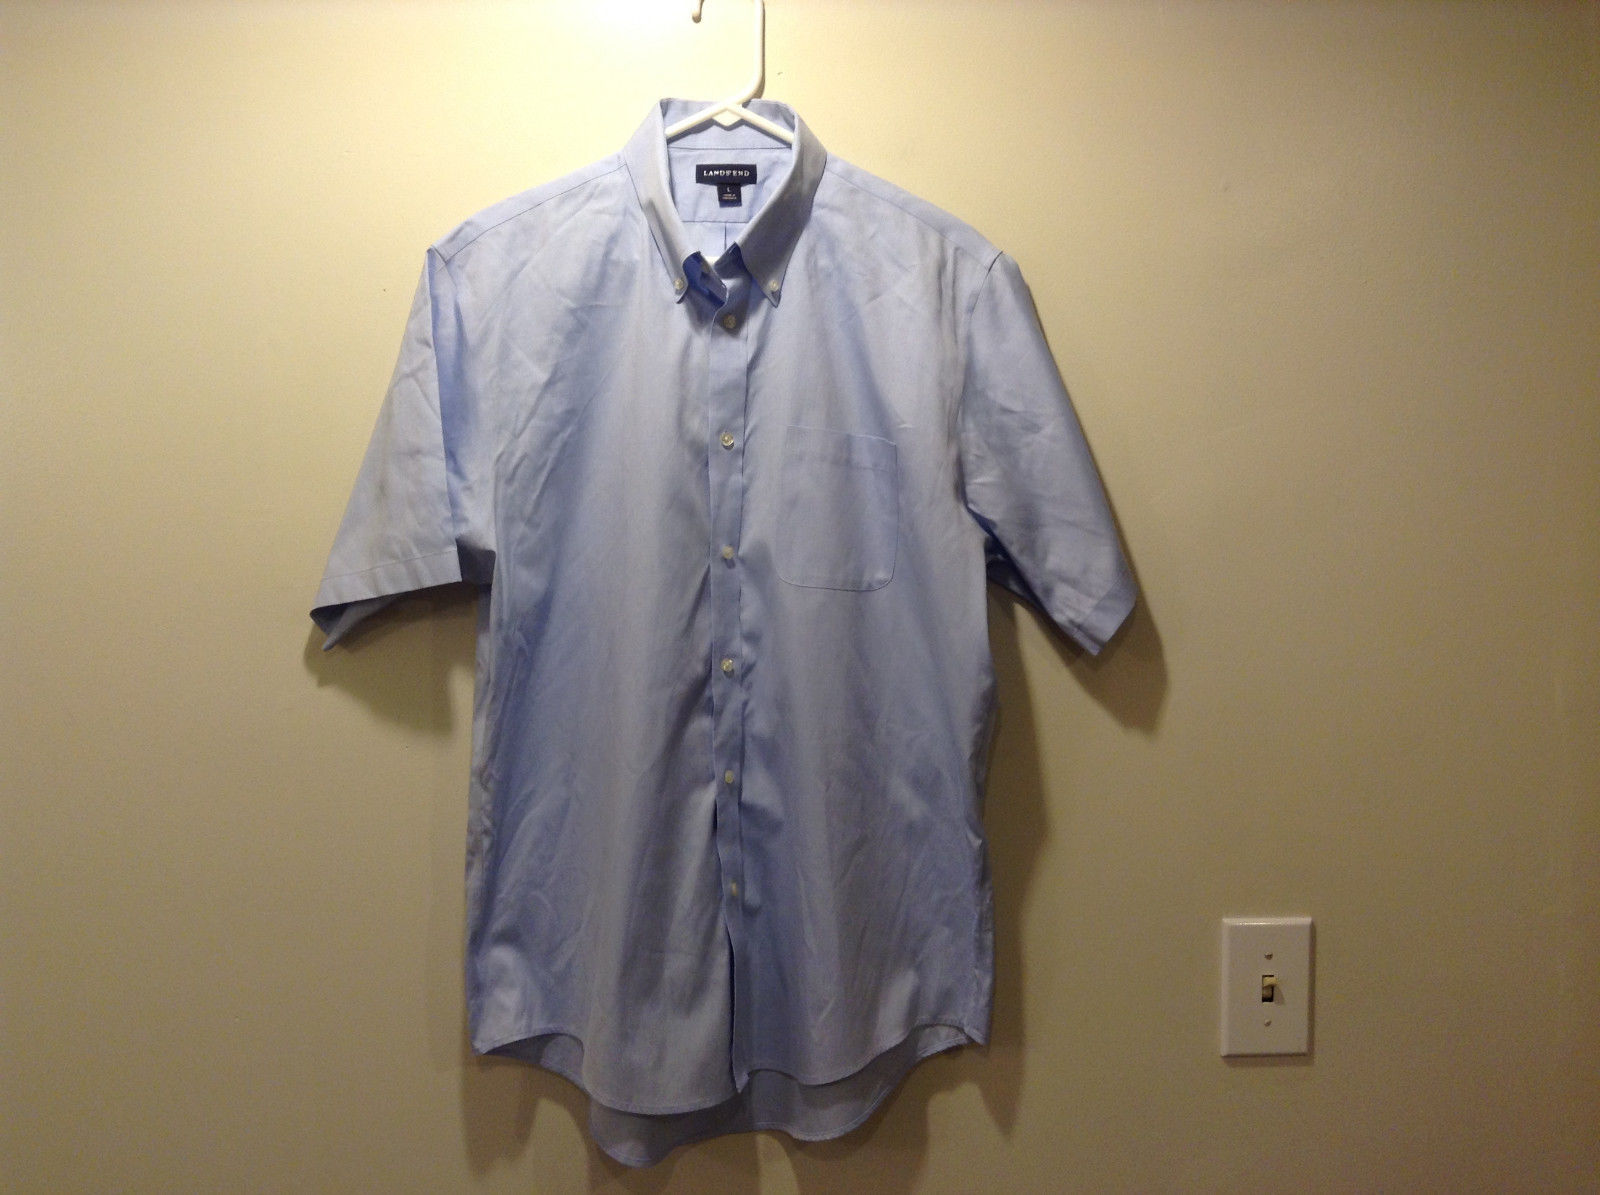 Lands' End Men's Size L Button Down Collar Shirt Short Sleeves Light Baby Blue